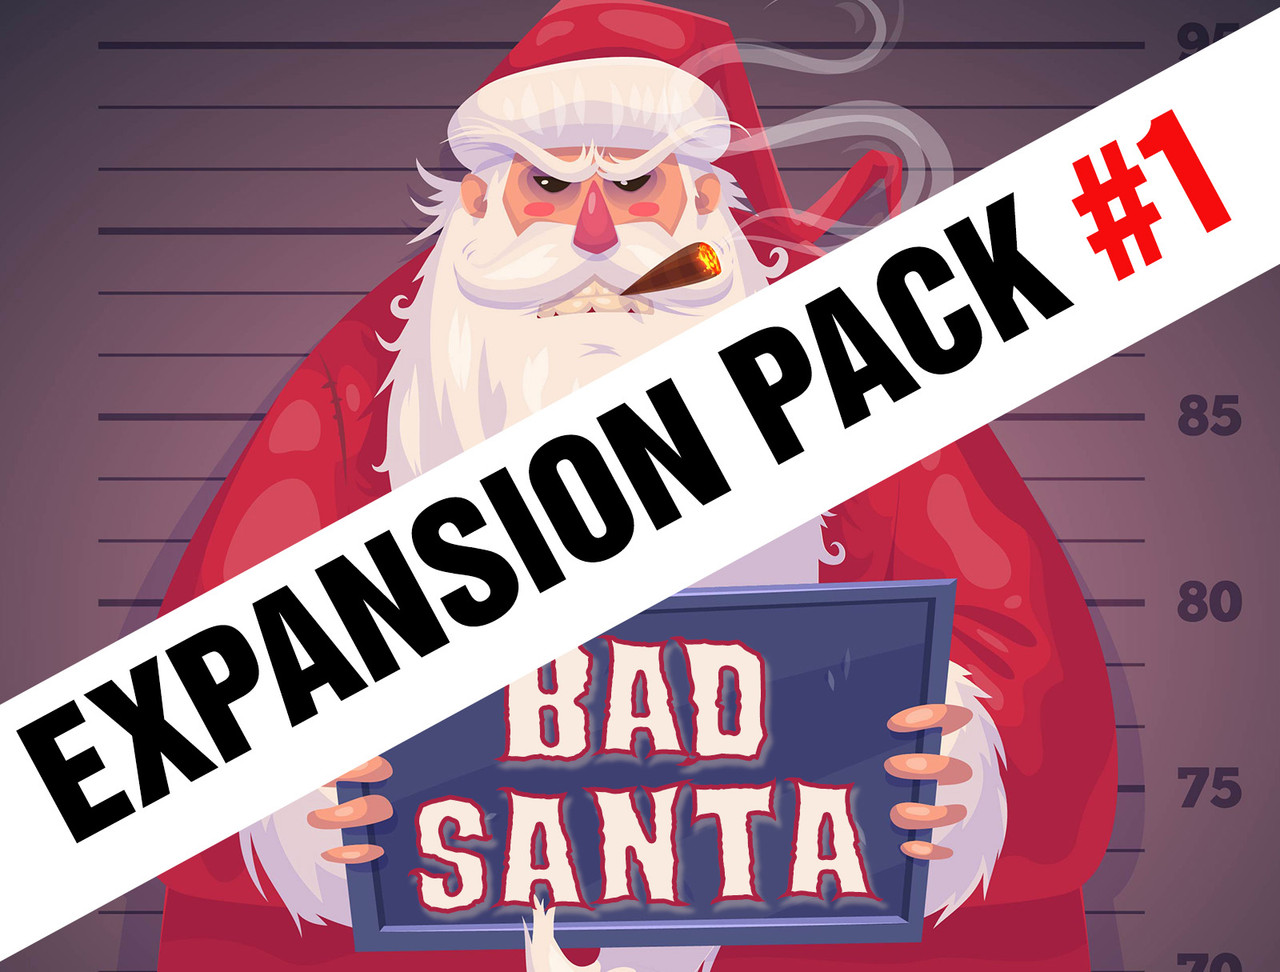 Bad Santa murder mystery expansion pack #1.